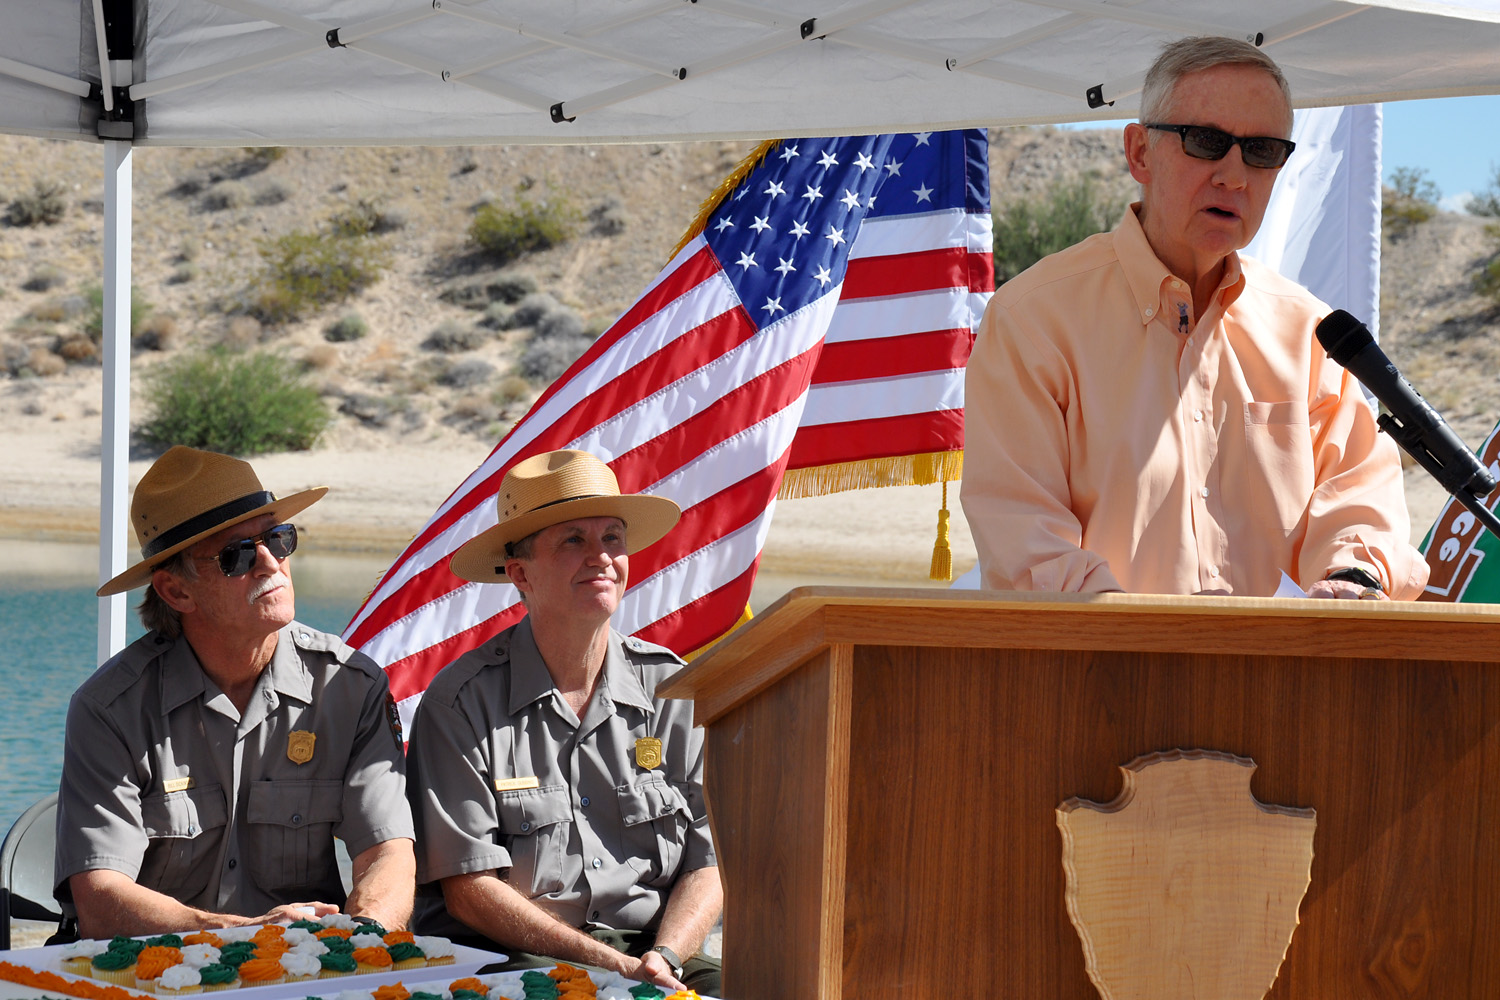 U.S. Sen. Harry Reid speaks at a ceremony at Lake Mead National Recreation Area in celebration of the park's 50th anniversary.